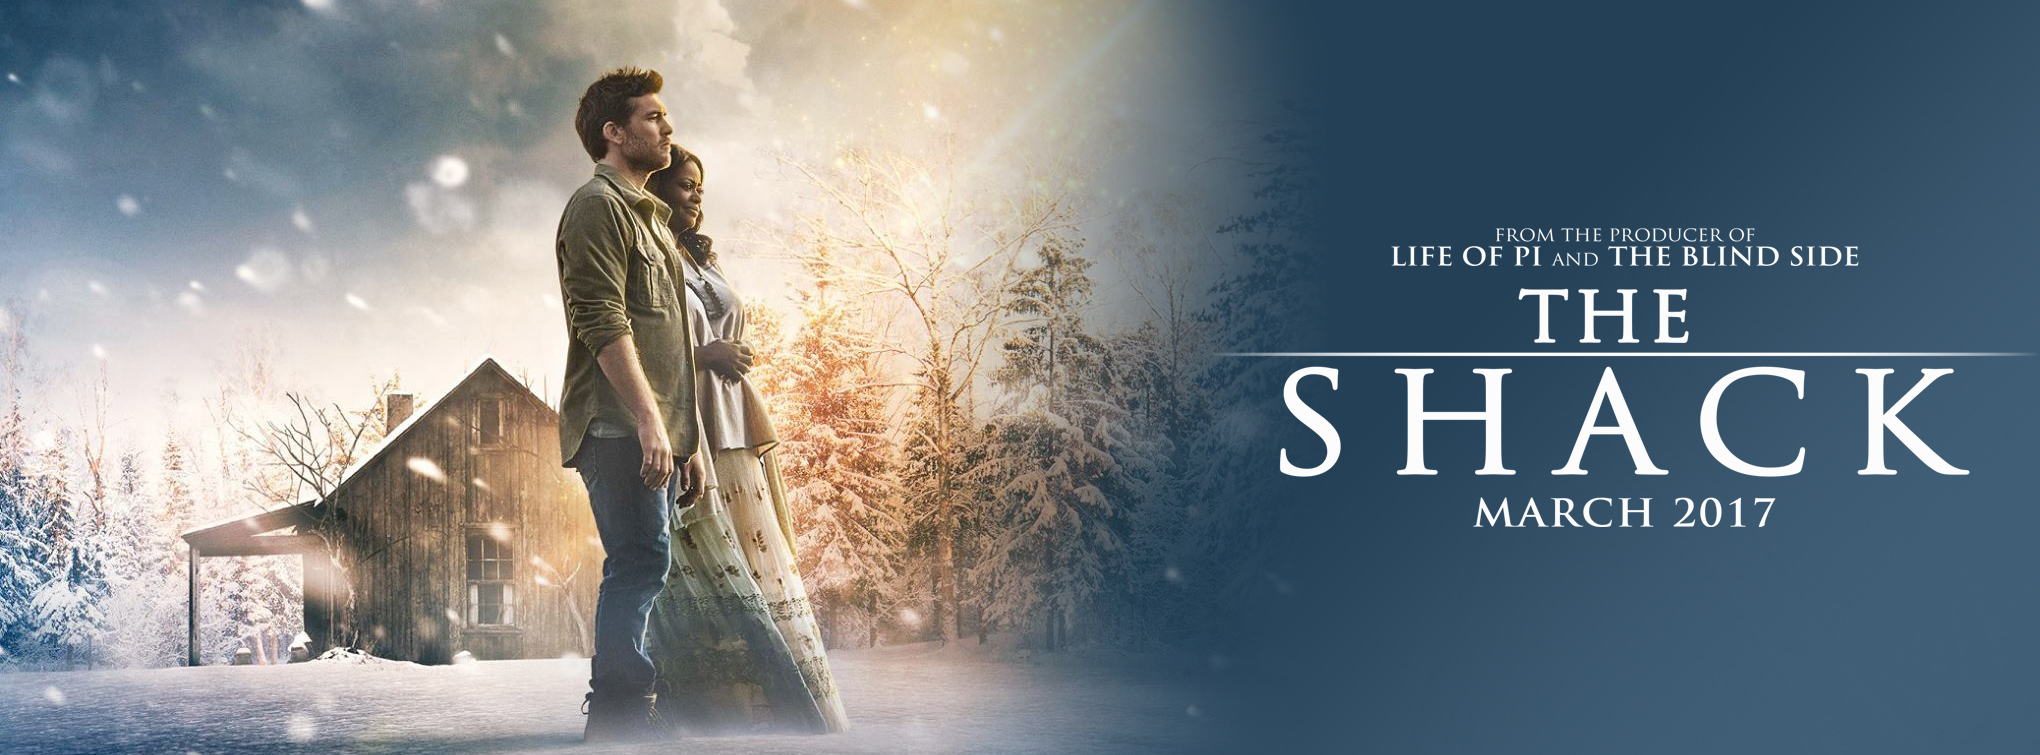 The Shack - premieres Thursday, March 2!